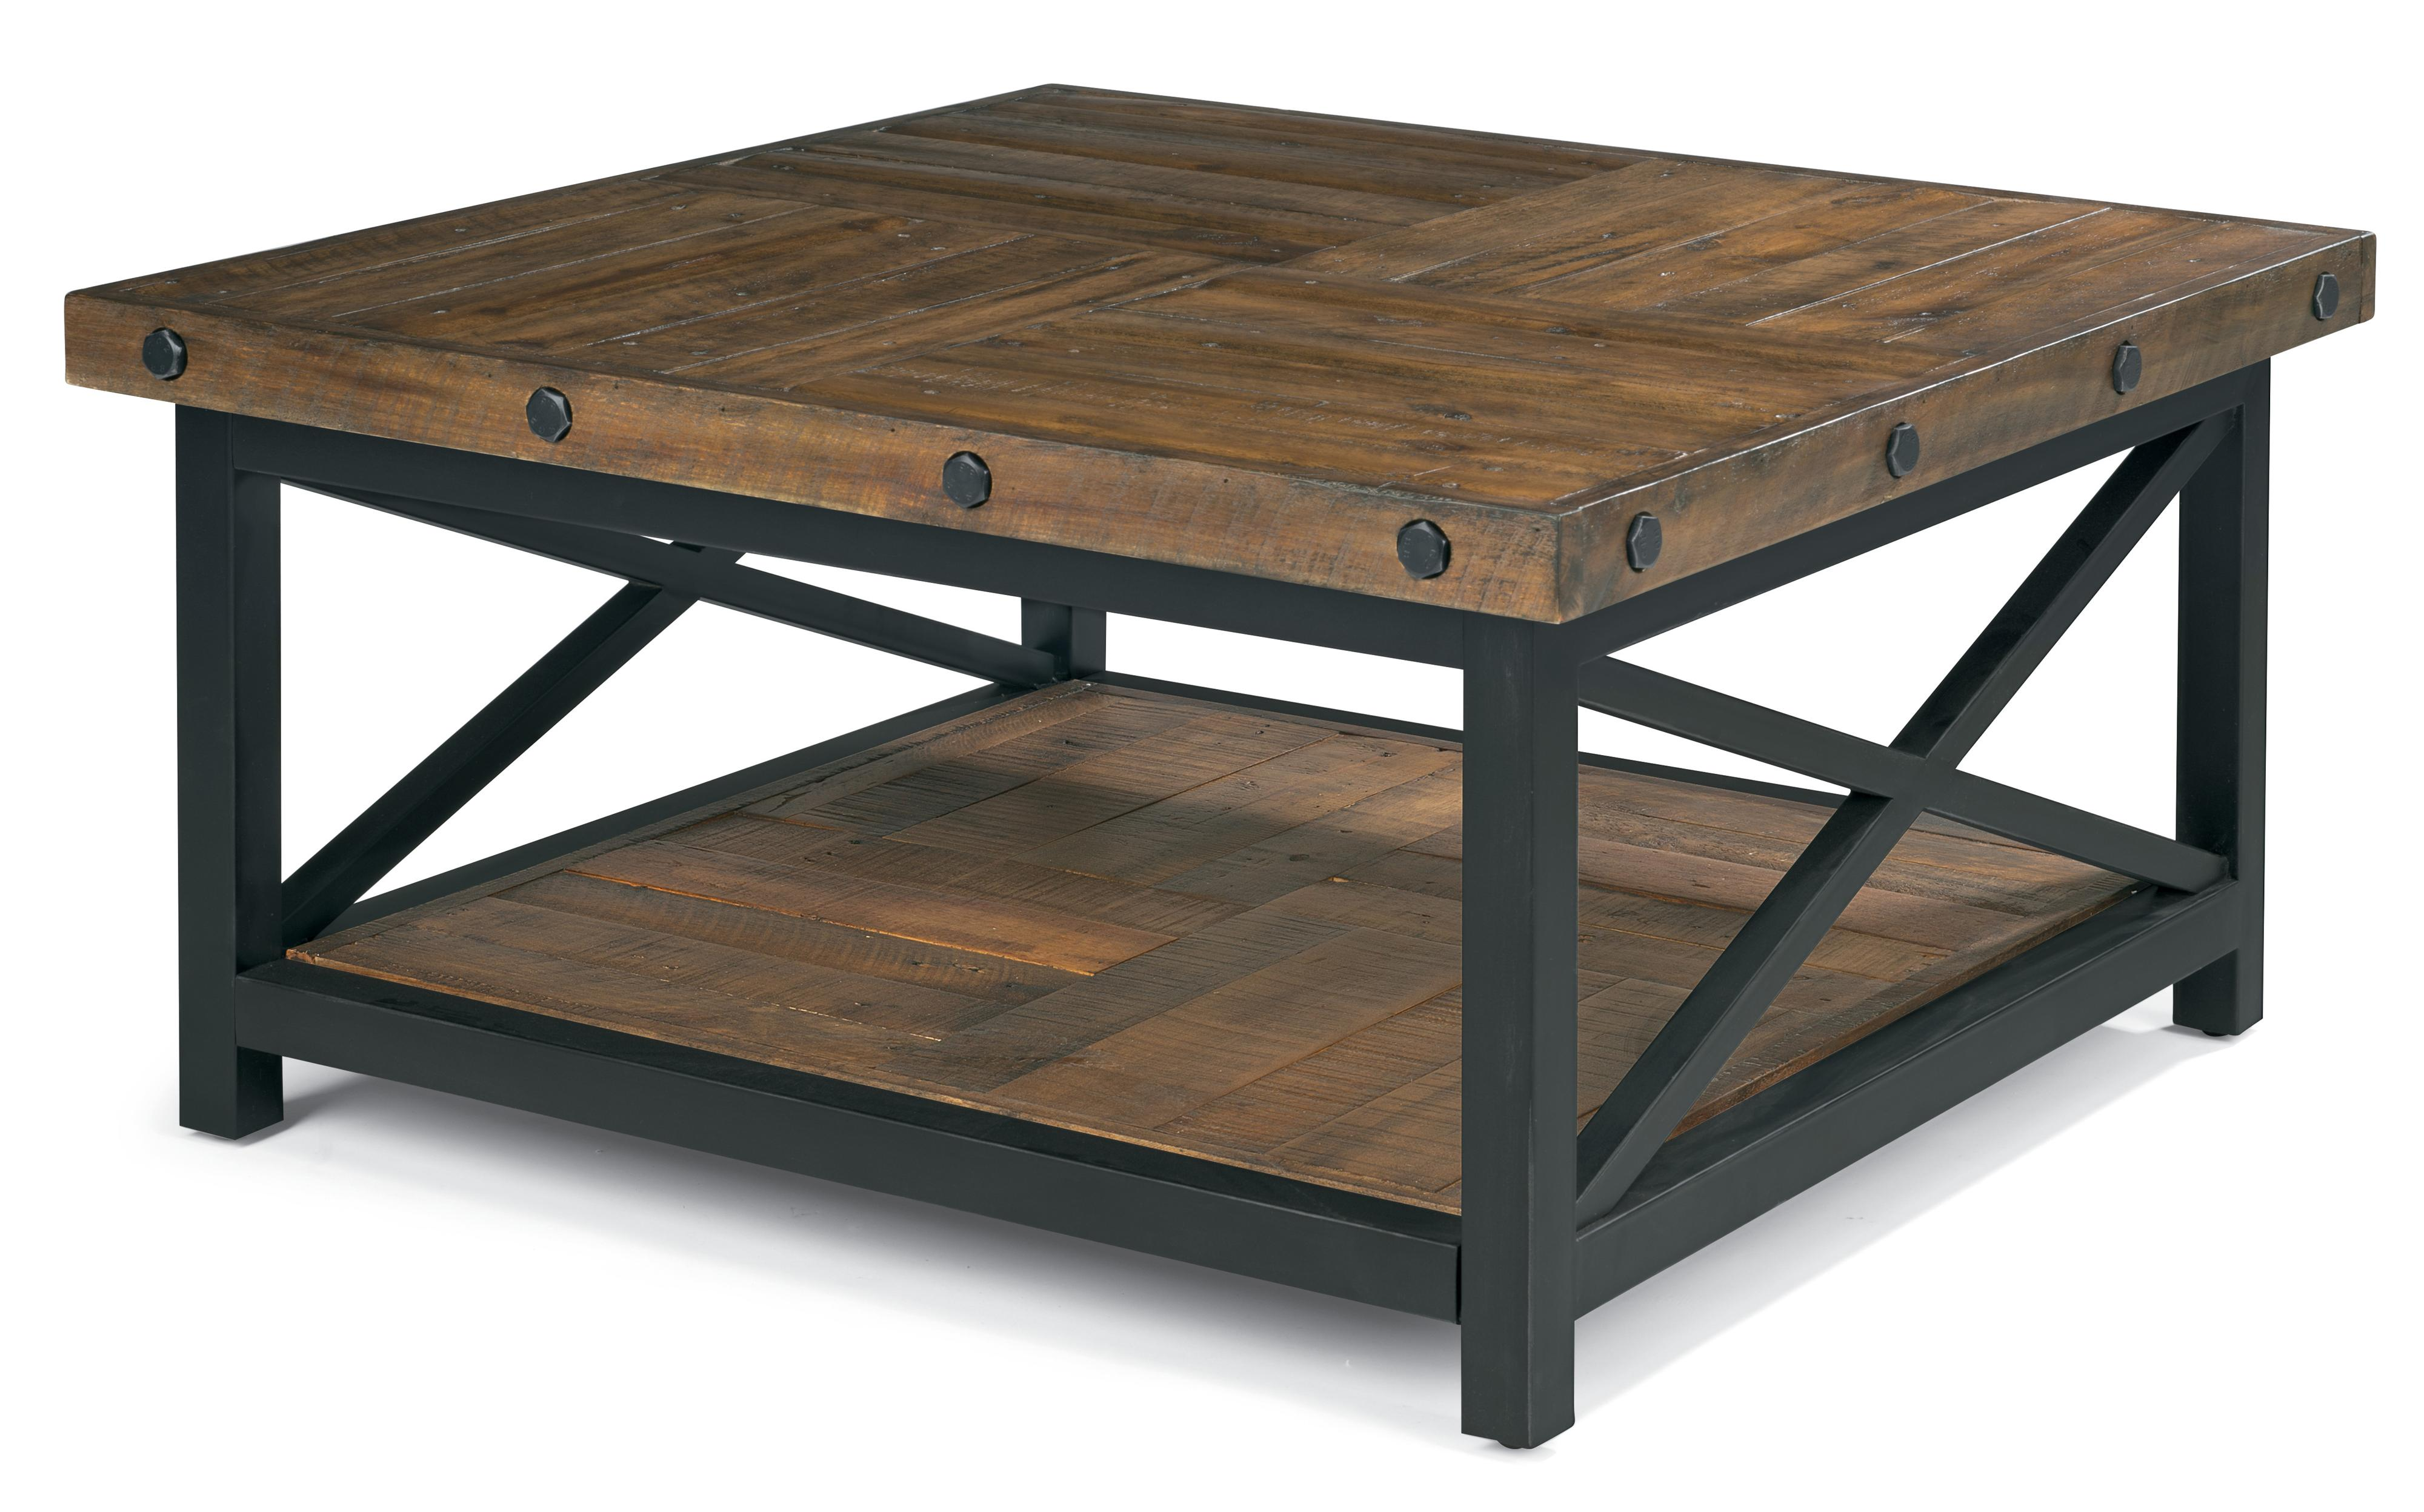 Square cocktail table with metal base and wood plank top for Coffee tables york pa